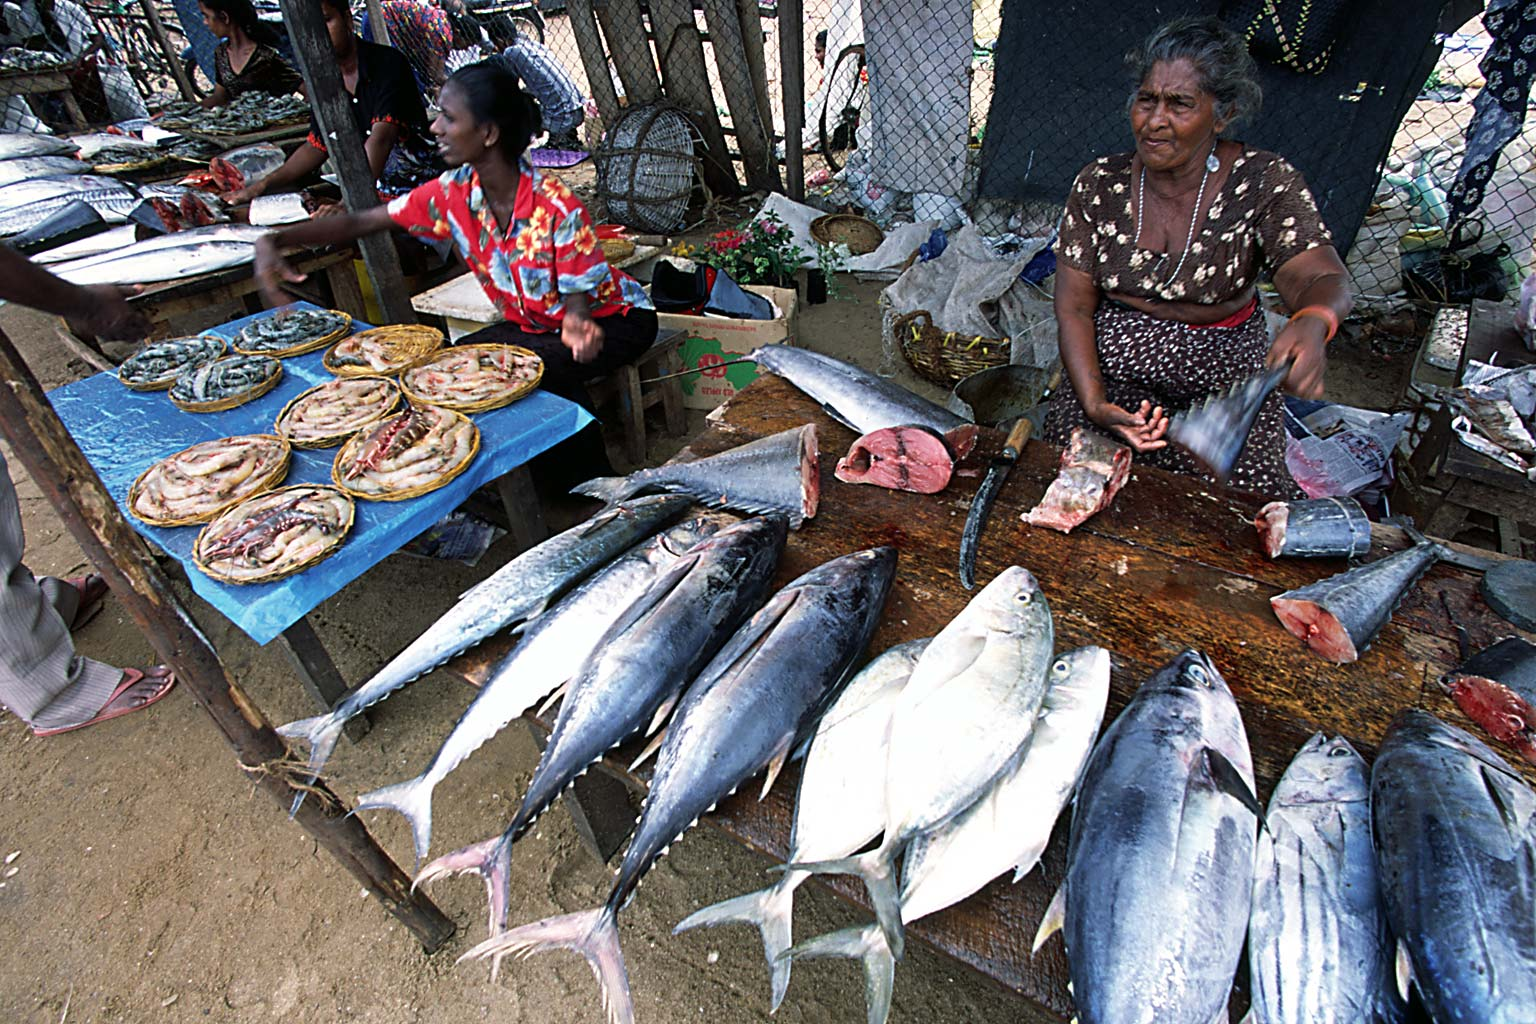 Main Fish Market Negombo, negombo-fishmarket-4.jpg (1536×1024) | fish market | Pinterest | Fish